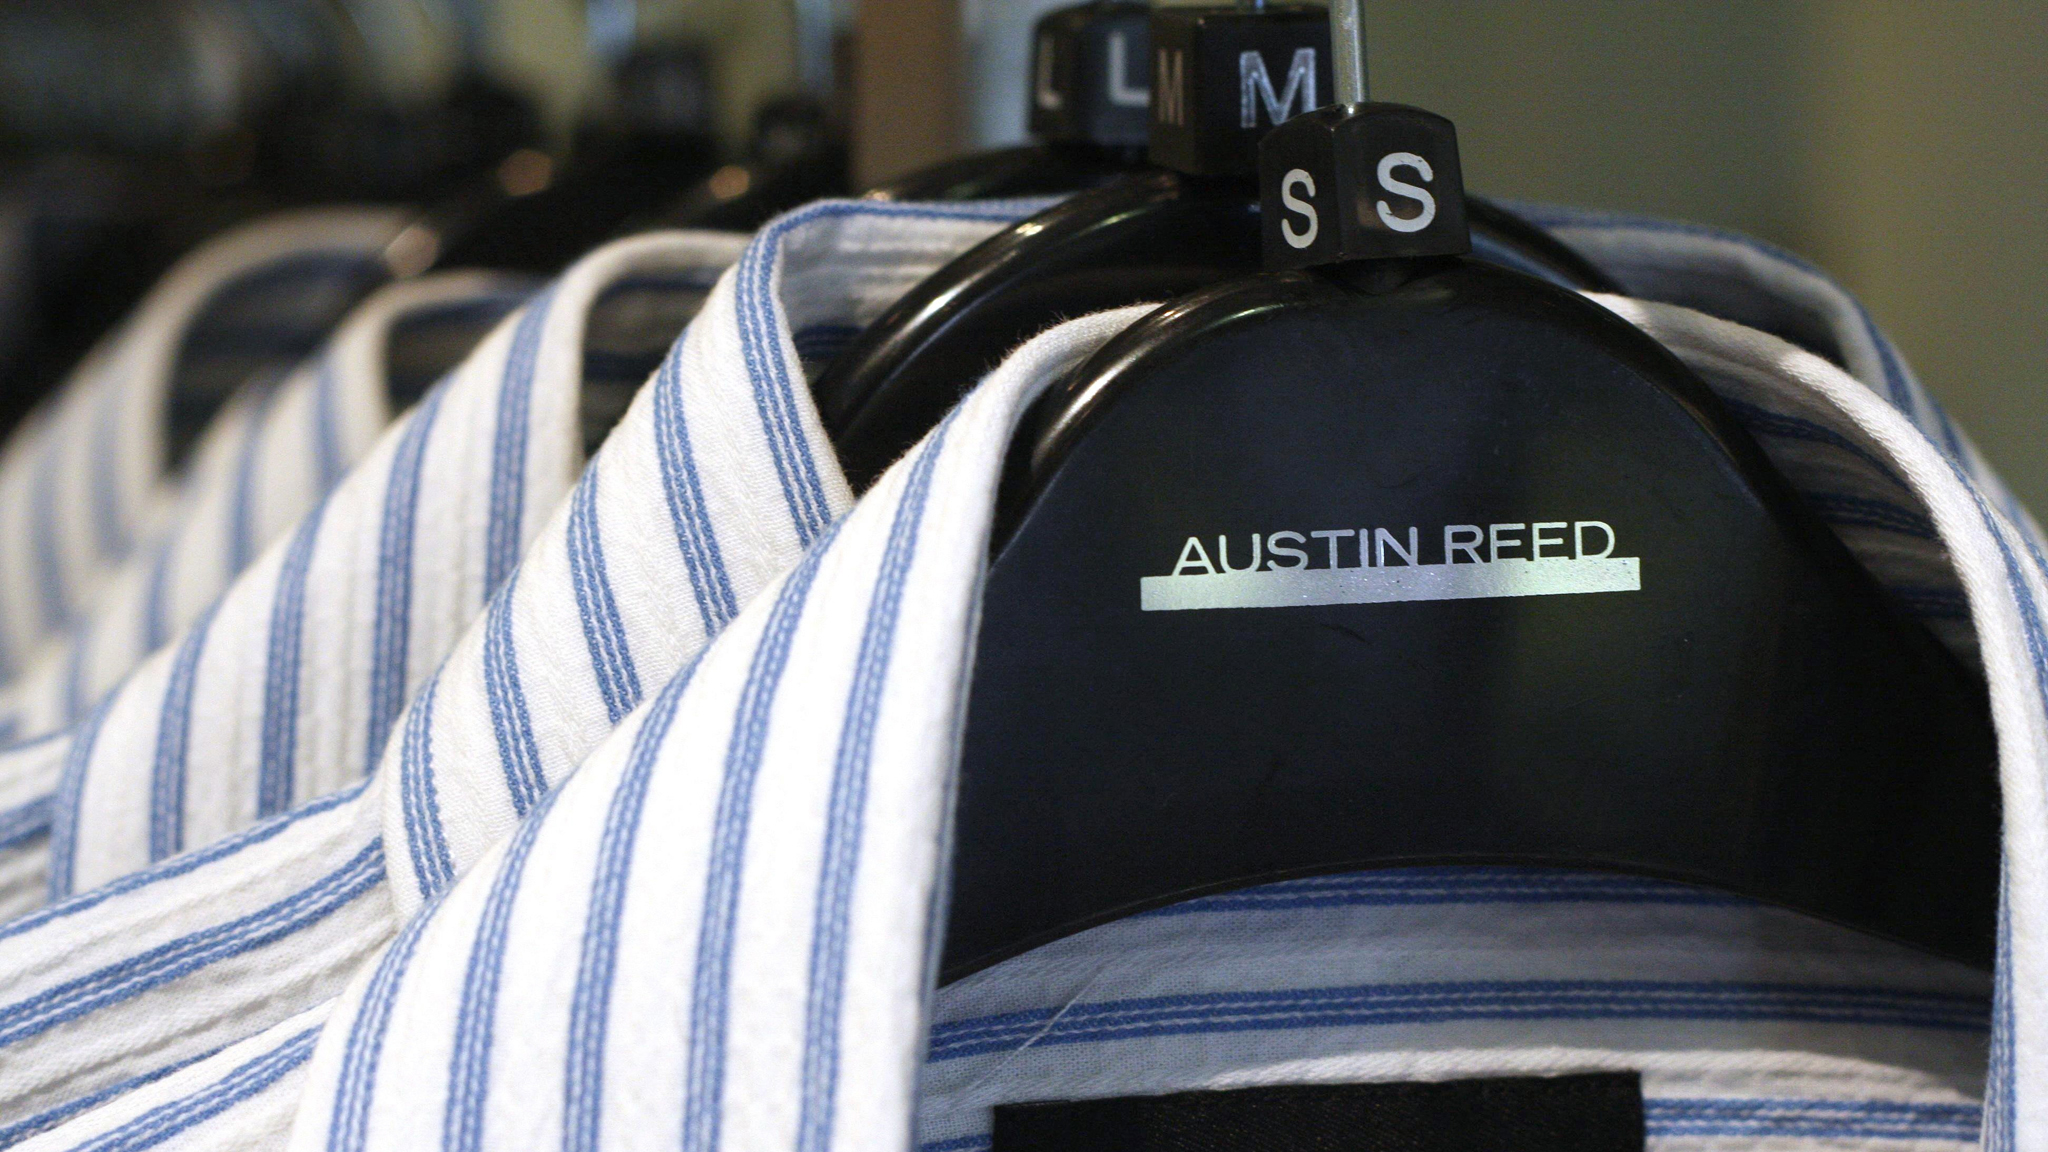 Austin Reed To Close With Loss Of 1 000 Jobs Financial Times